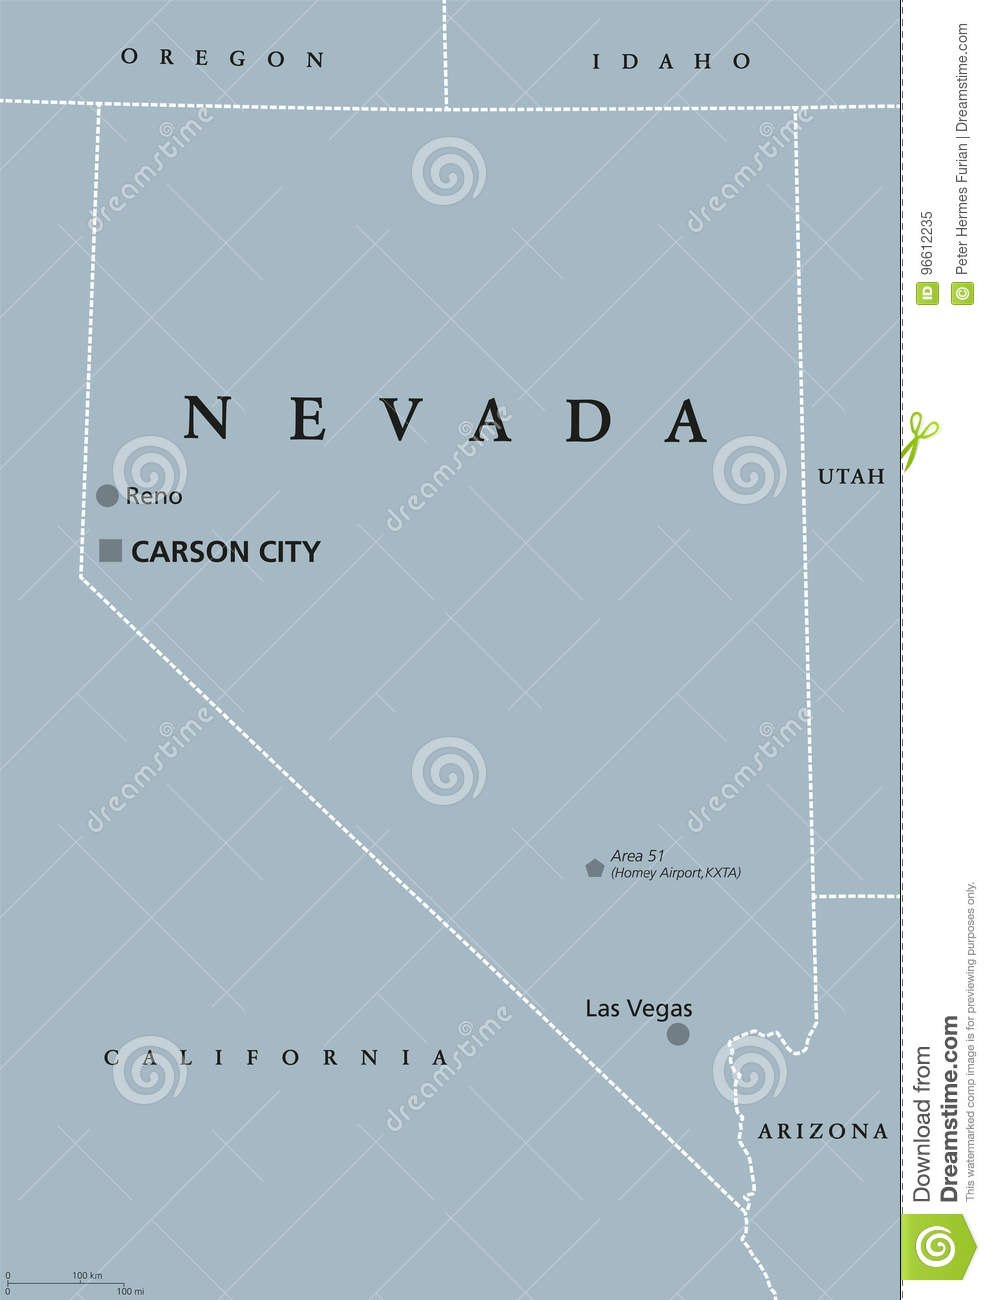 on carson city california map